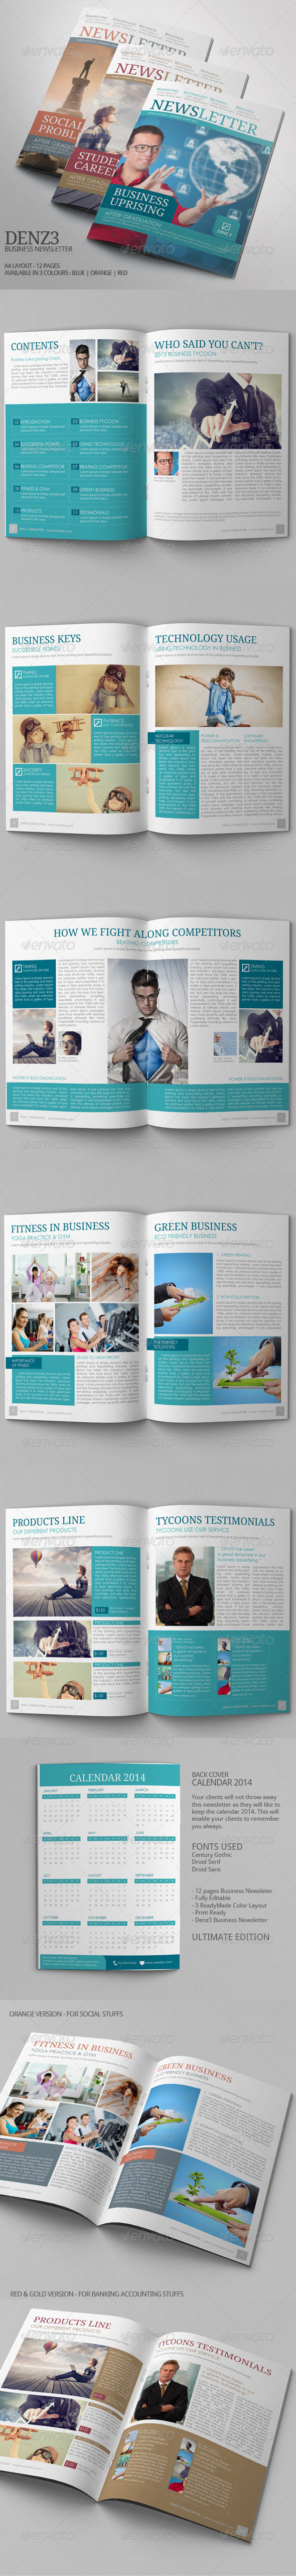 GraphicRiver Business Newsletter Vol VIII 7263842